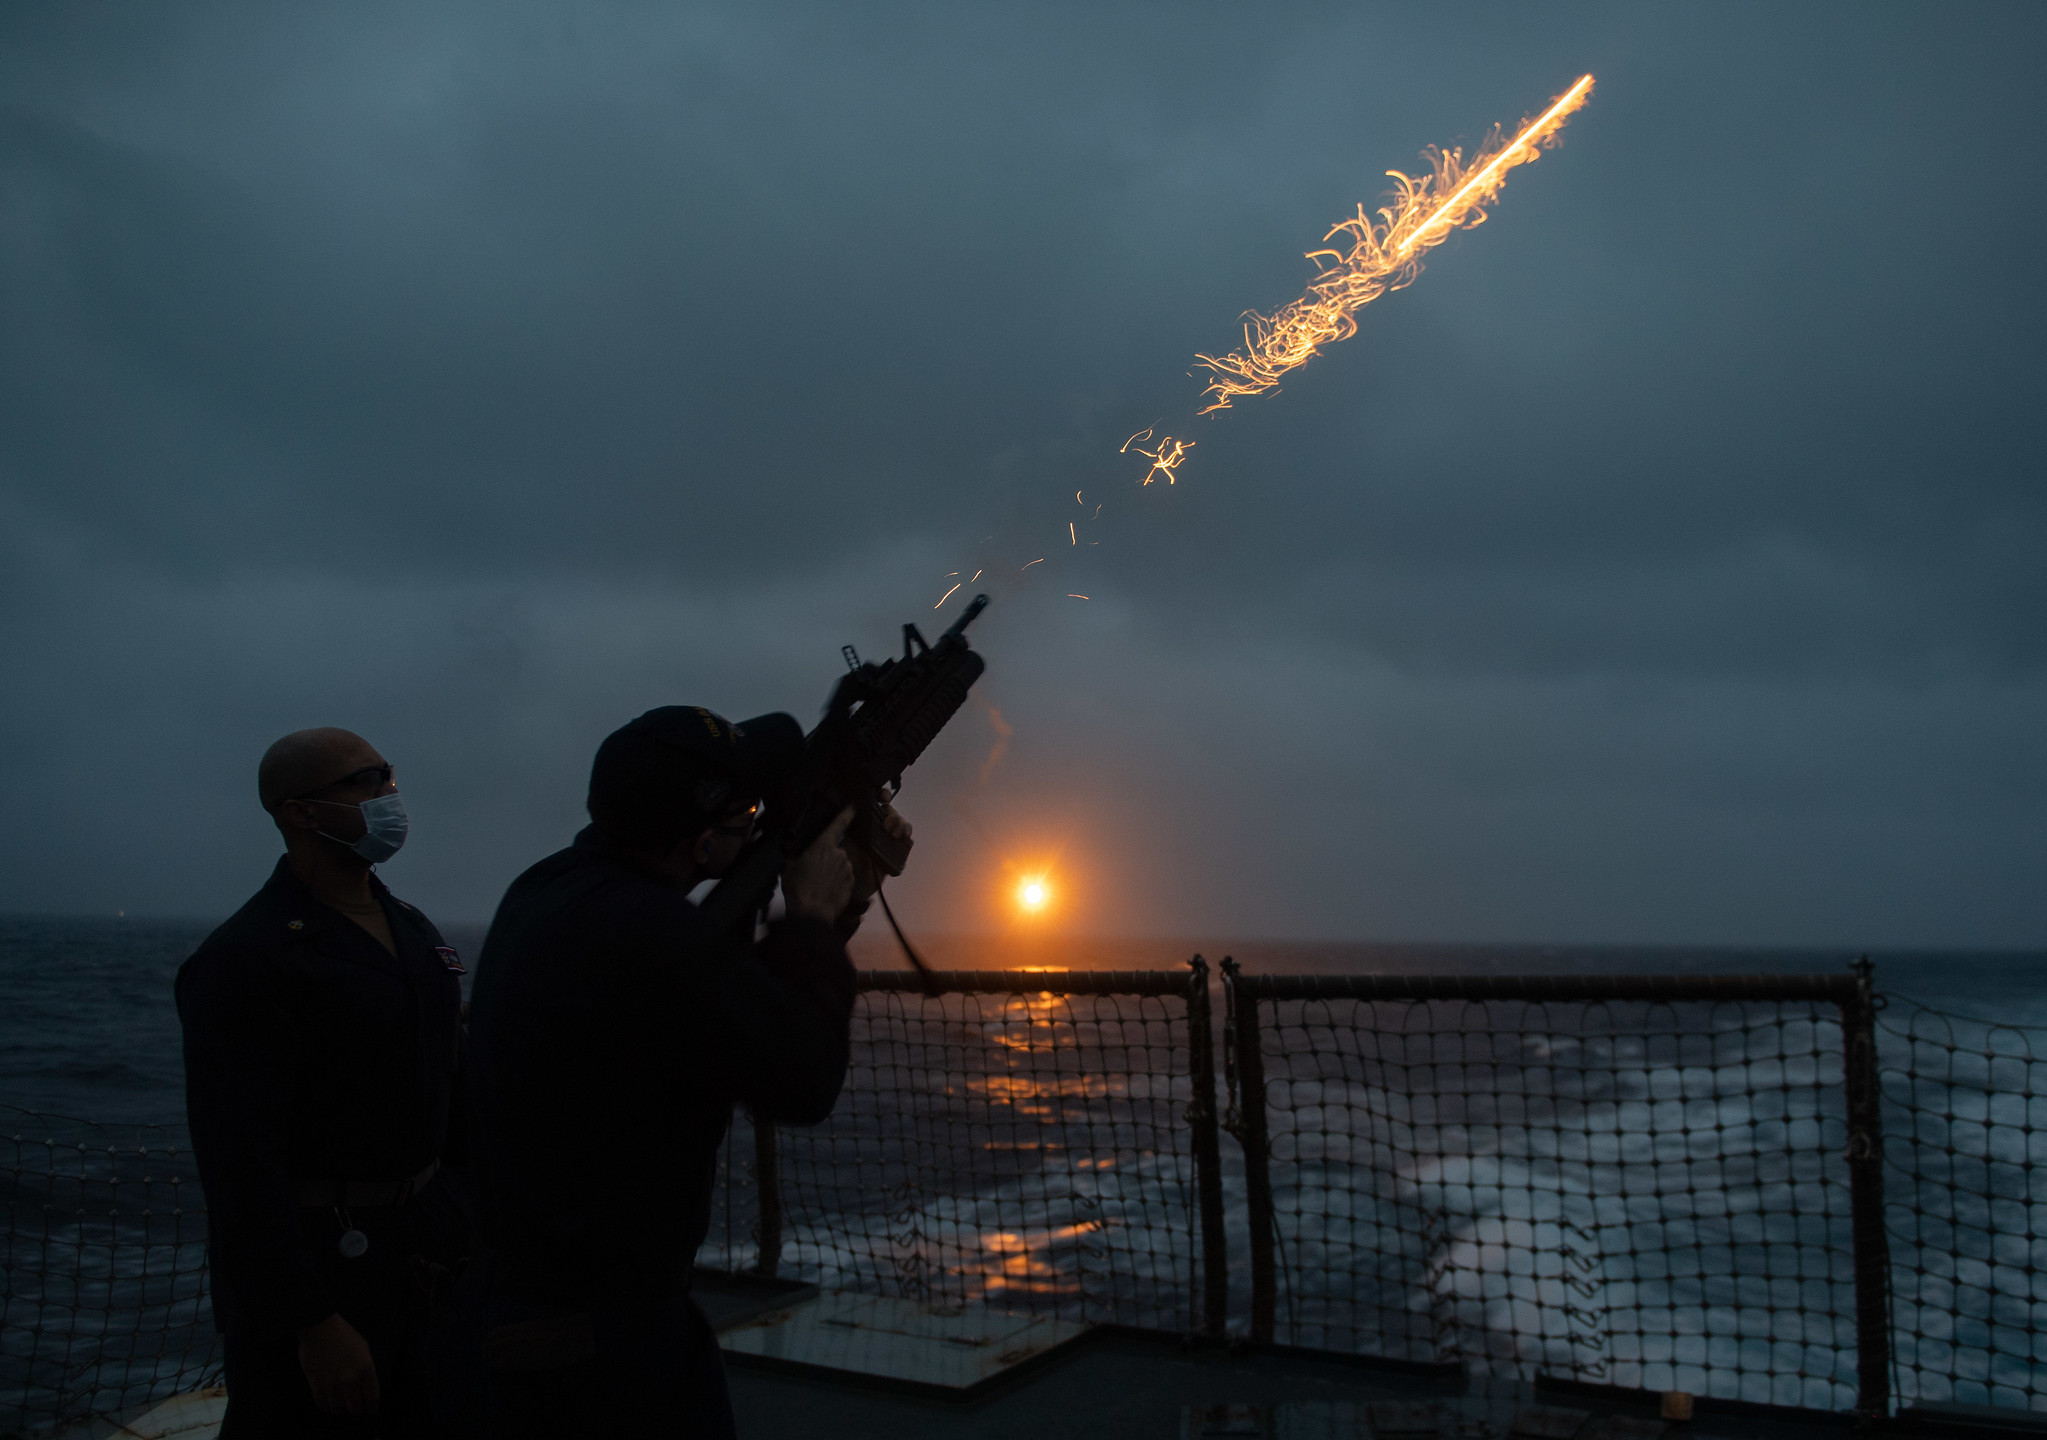 Chief Gunner's Mate Ricardo Stewart, left, watches as Gunner's Mate 3rd Class Cullen McArdle fires a flare during a flare exercise in the Philippine Sea aboard the Arleigh Burke-class guided-missile destroyer USS Barry (DDG 52). (Mass Communications Specialist Seaman Molly M. Crawford/Navy)